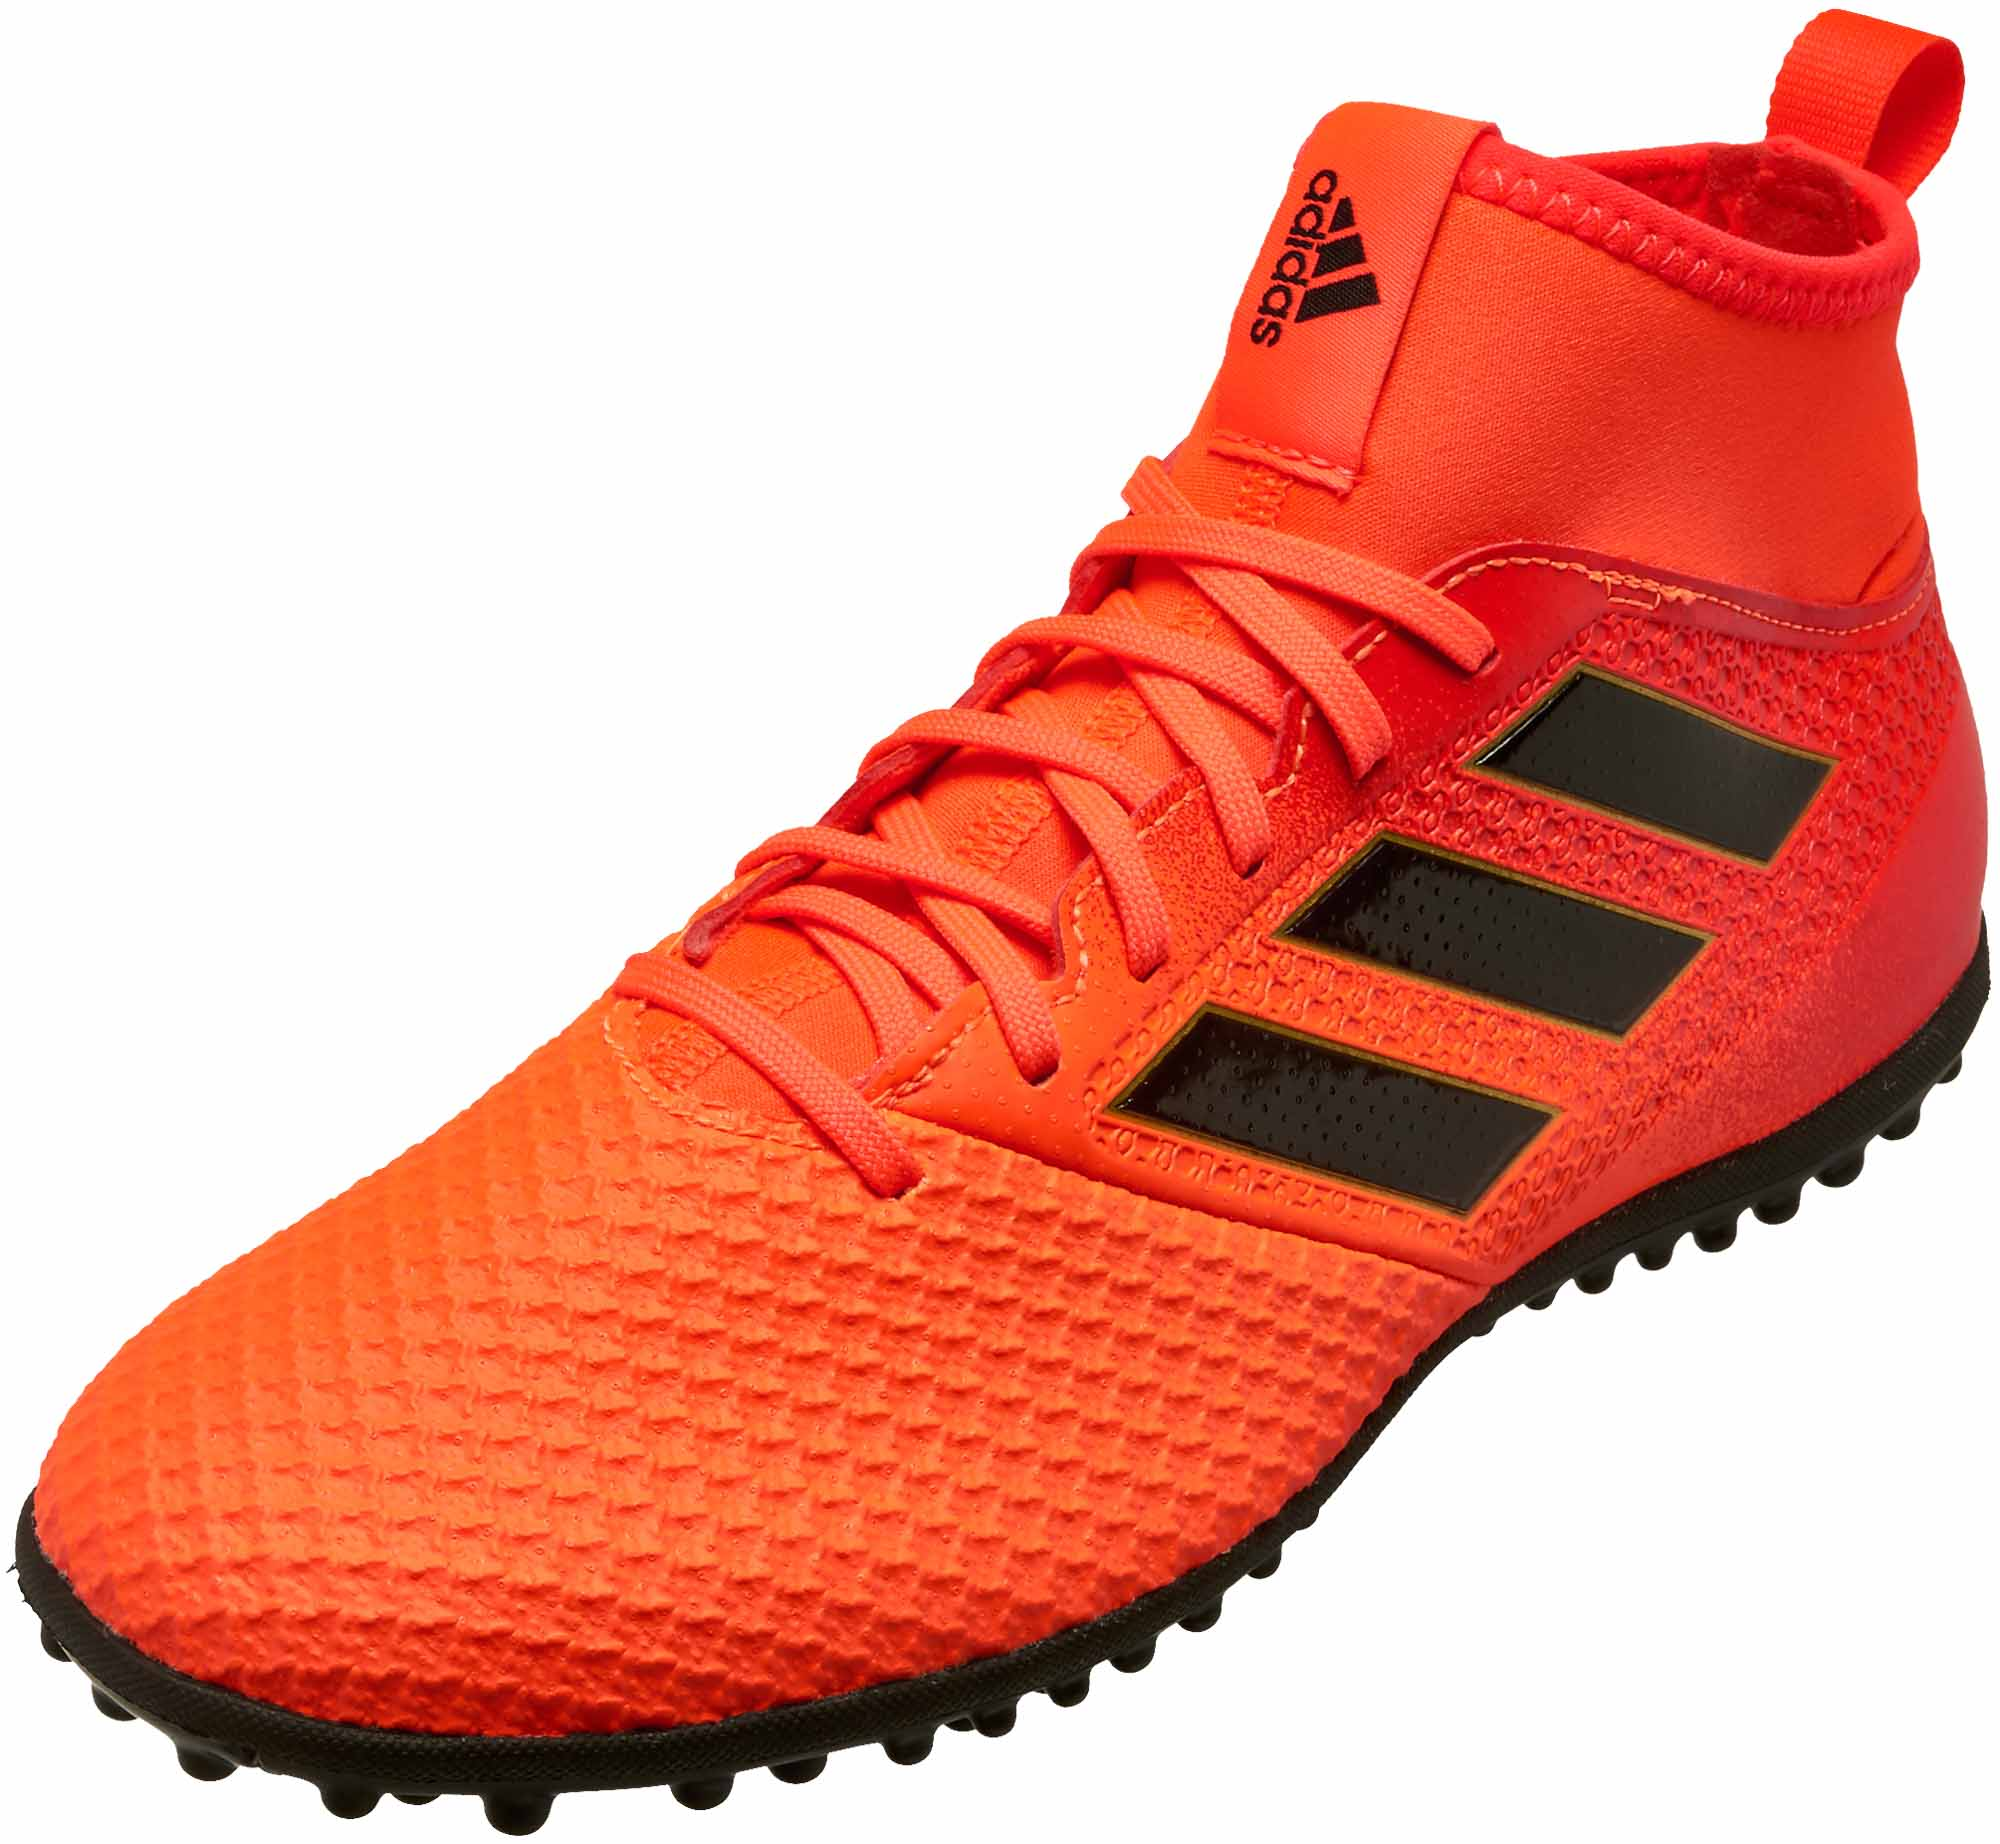 27ce14e59090 adidas ACE Tango 17.3 TF - Solar Red & Solar Orange